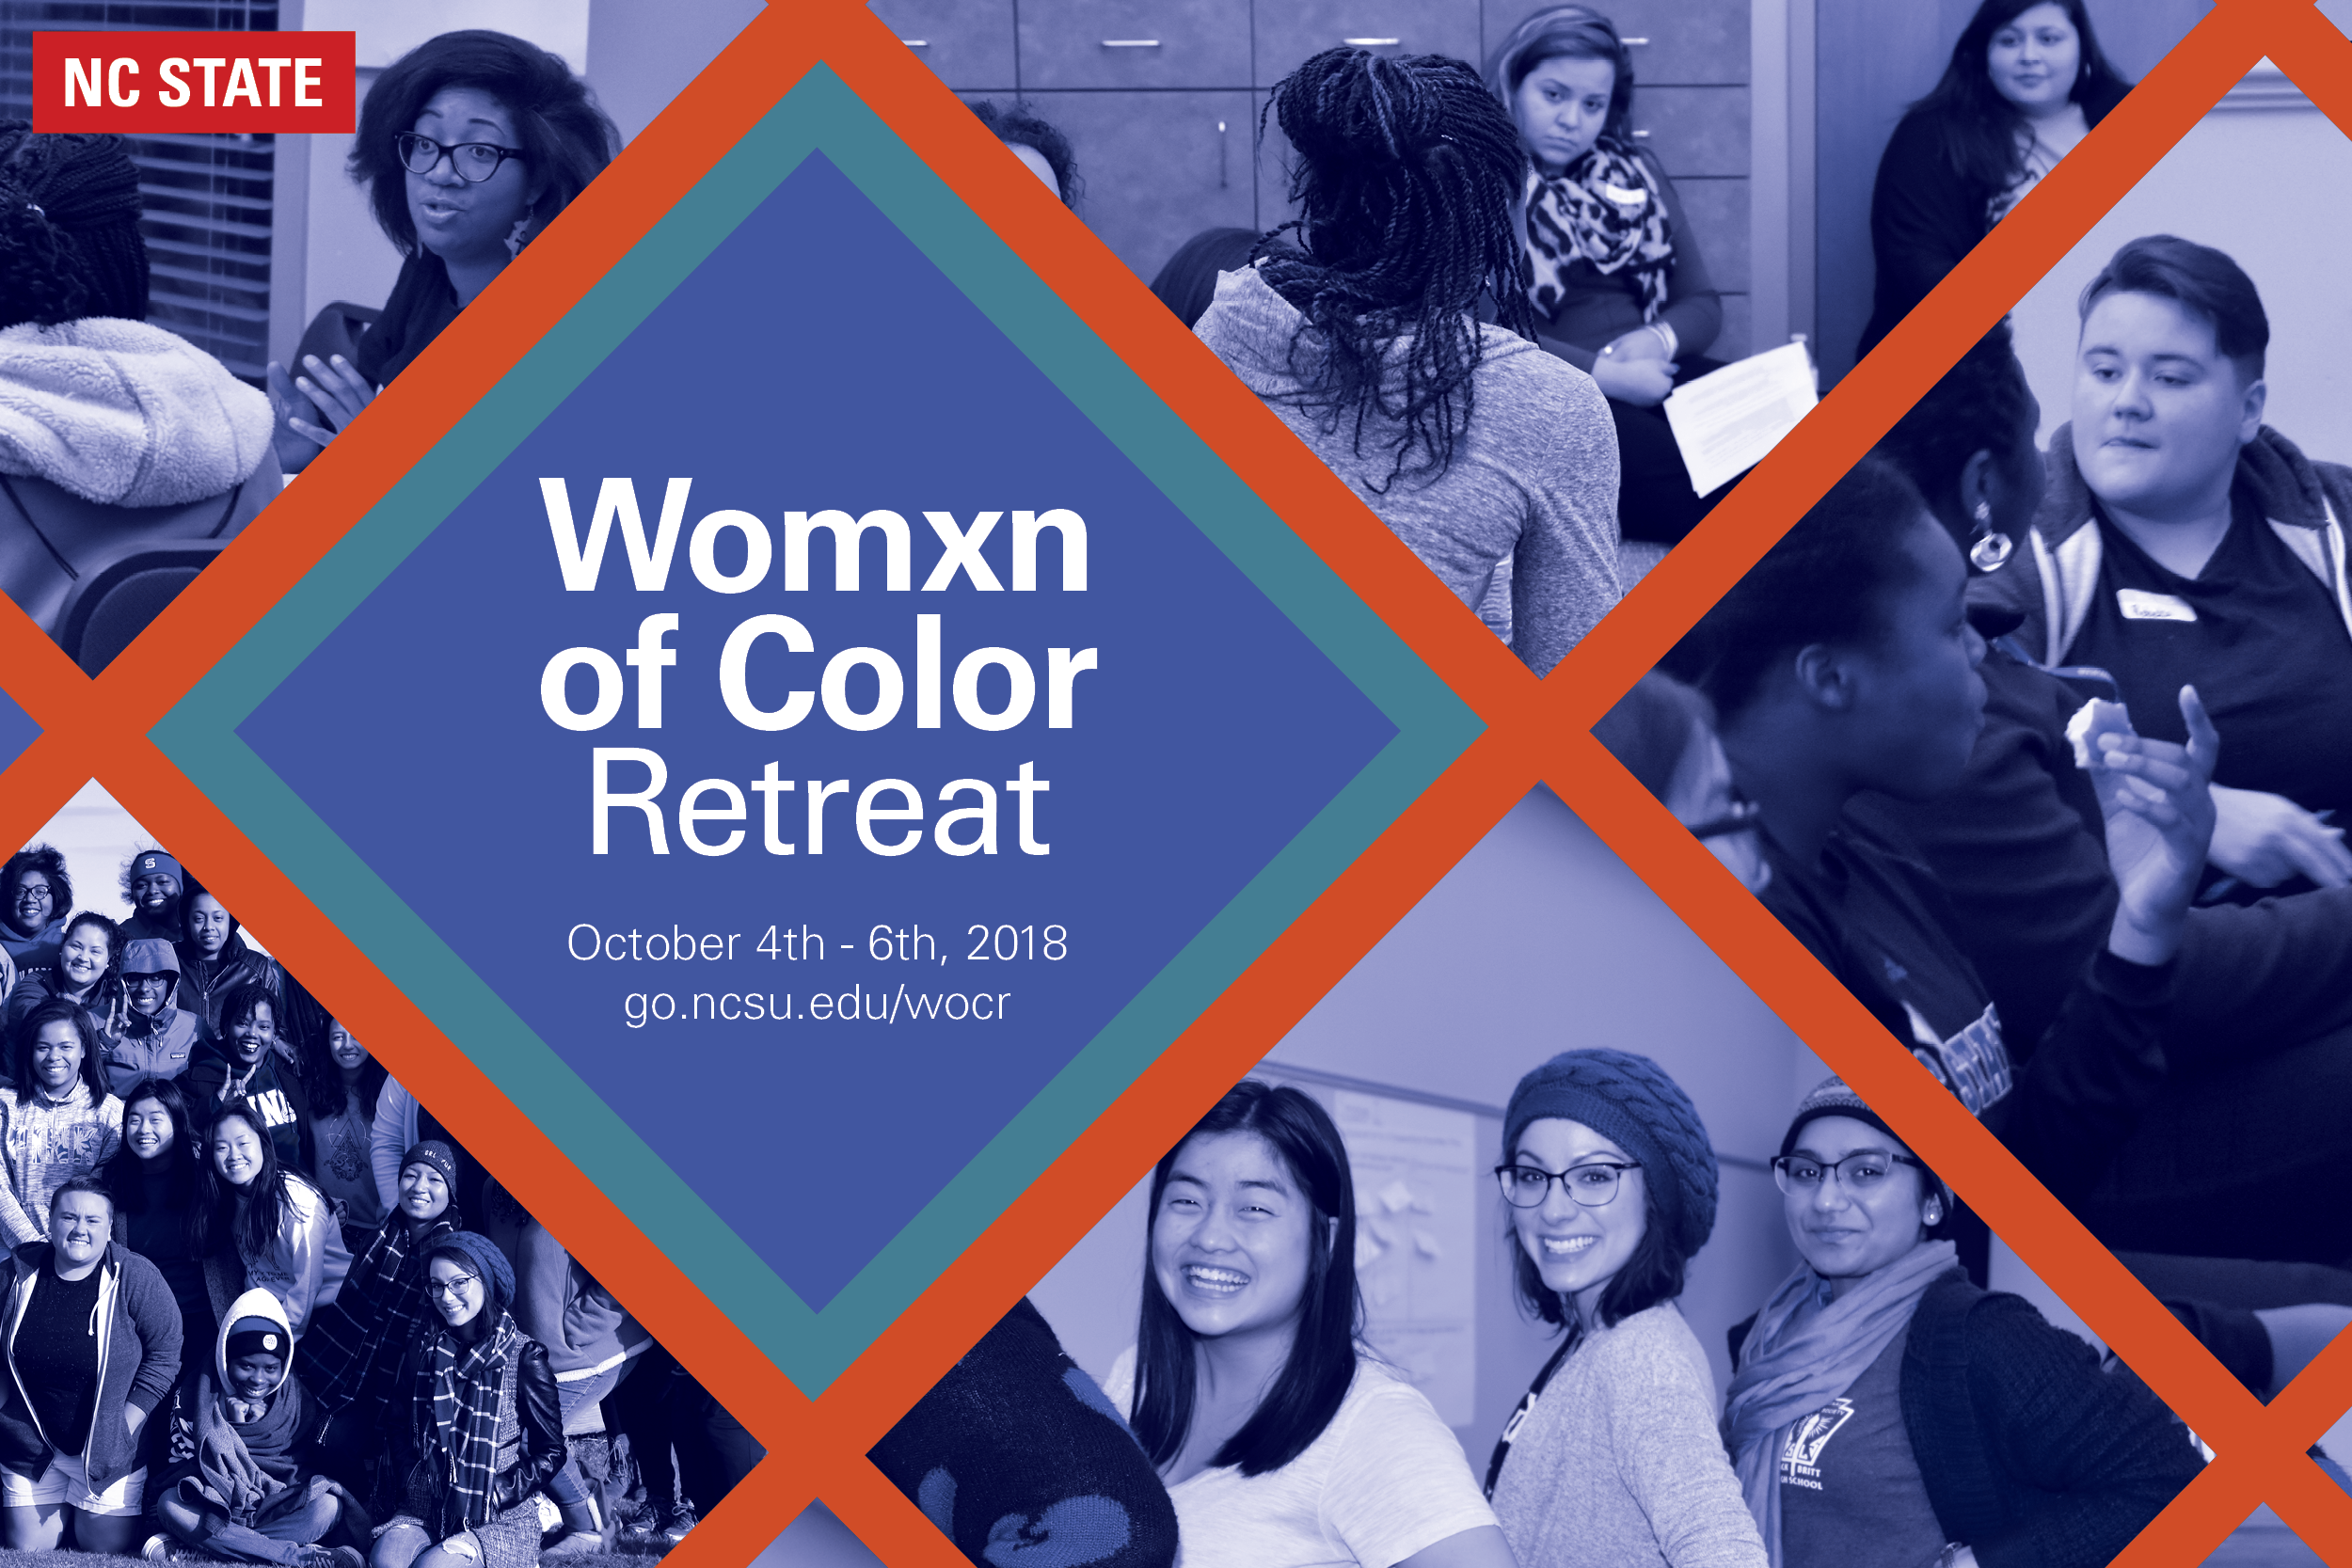 Women of Color Retreat, October 4-6, 2018